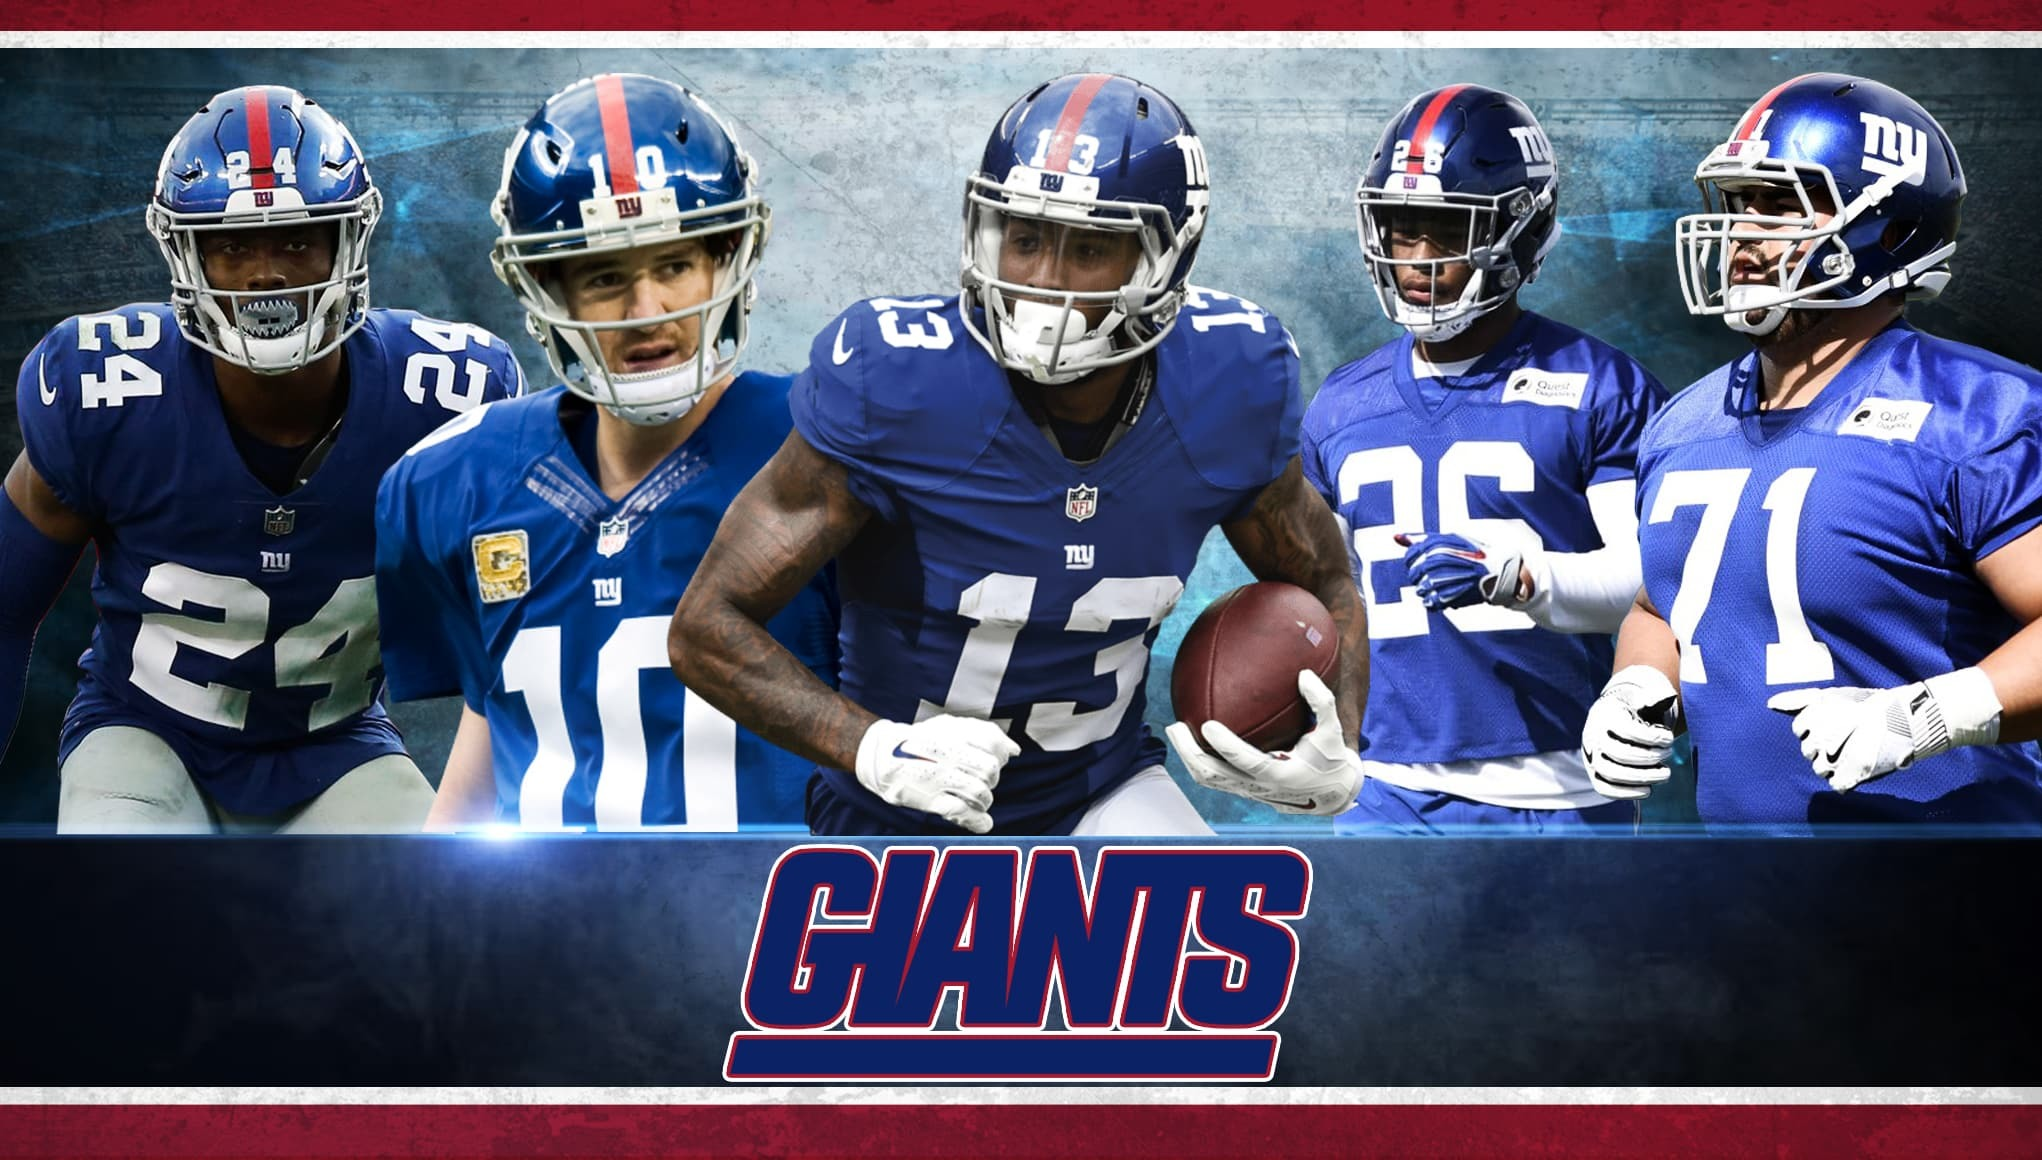 c3f568e58f8 Charitybuzz: 2 Tickets to a 2019 New York Giants Game & Tour ...